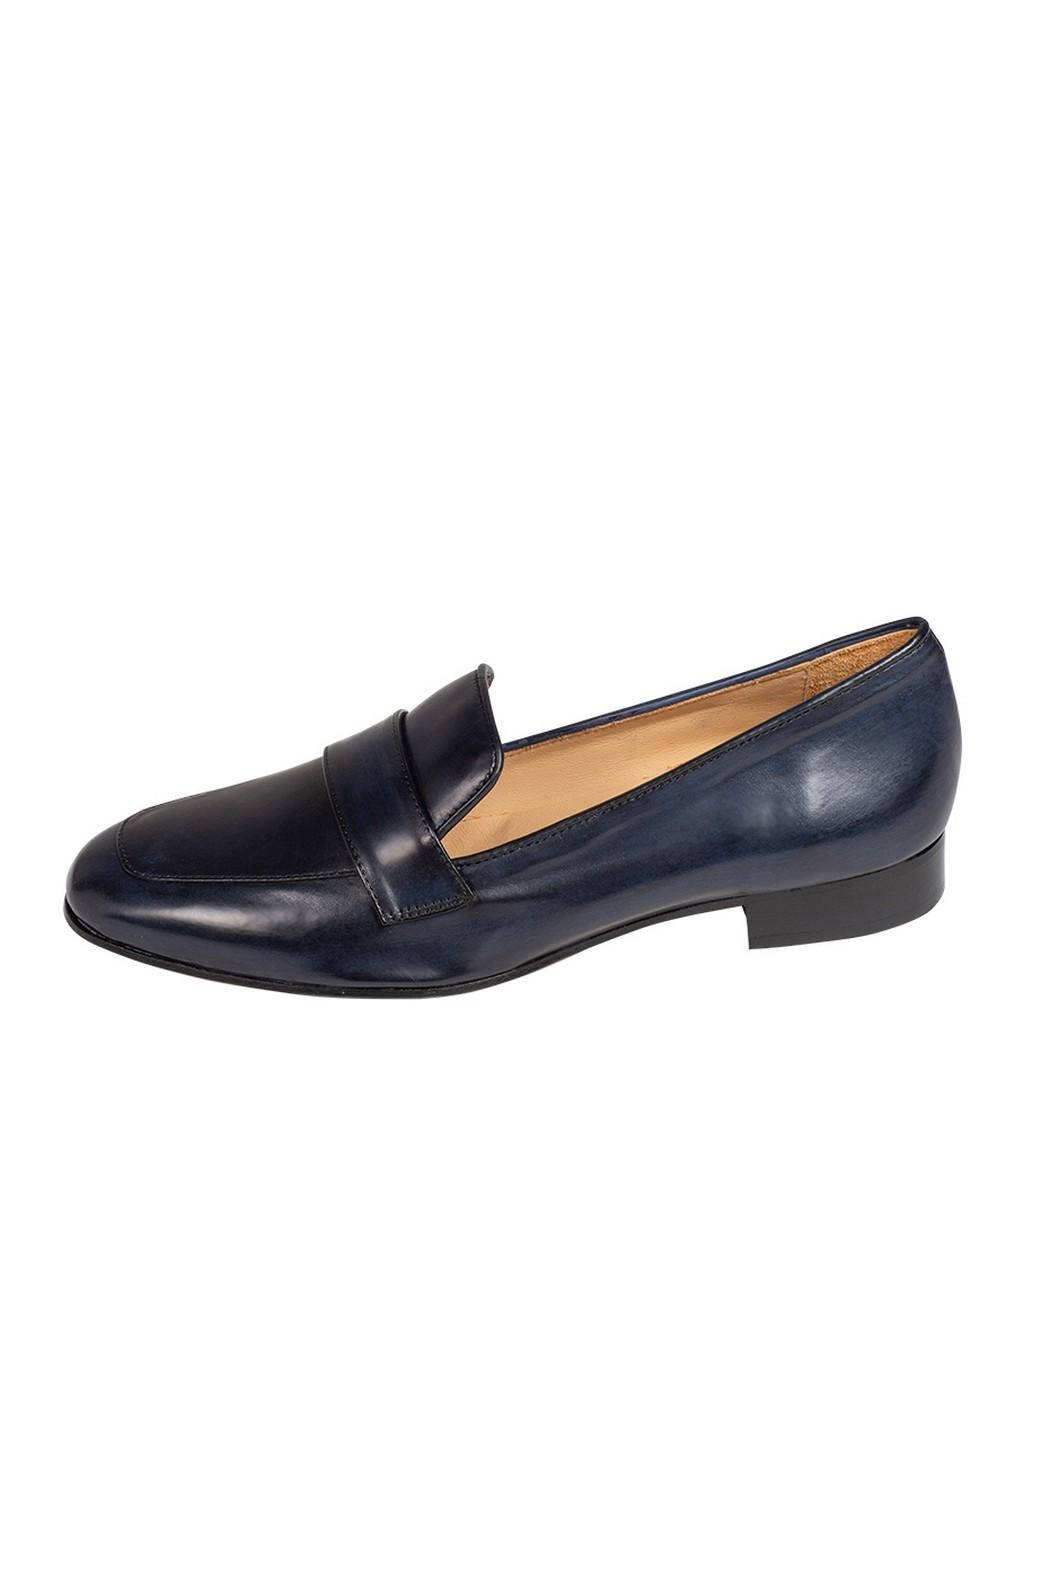 Pascucci Navy Leather Loafers - Main Image